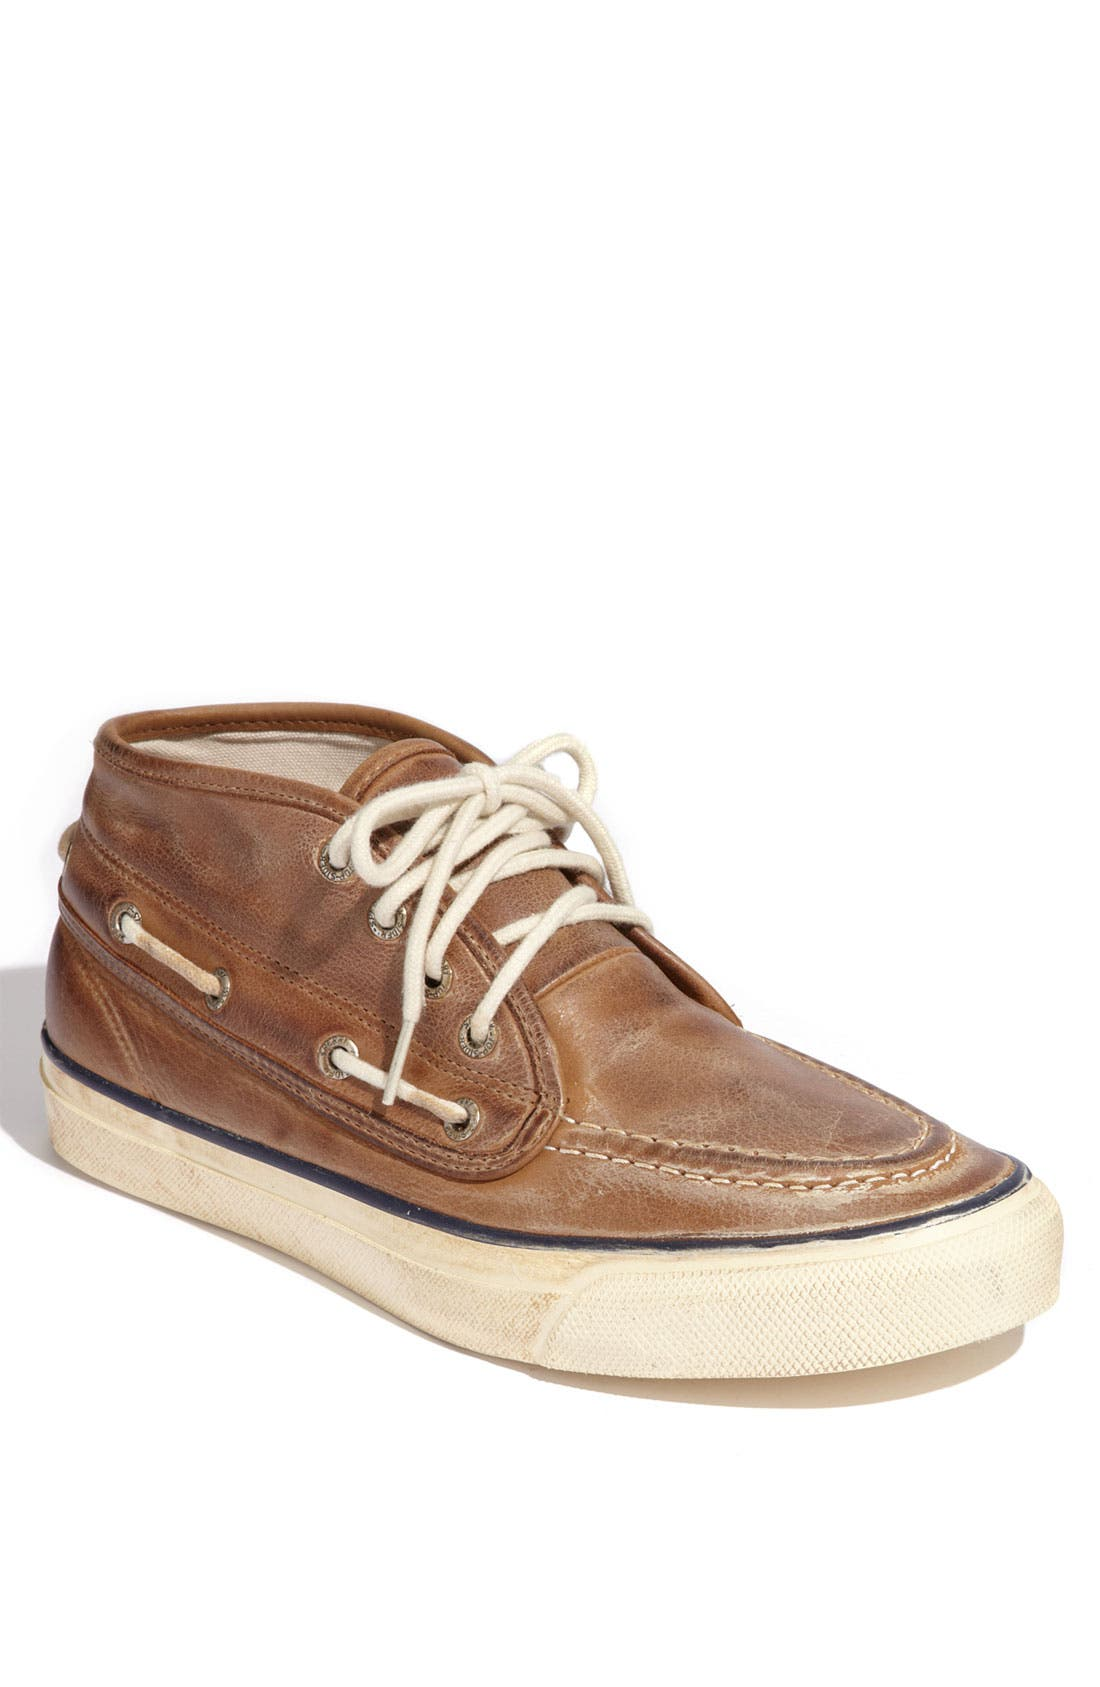 Alternate Image 1 Selected - Sperry Top-Sider® 'Seamate' Chukka Boot